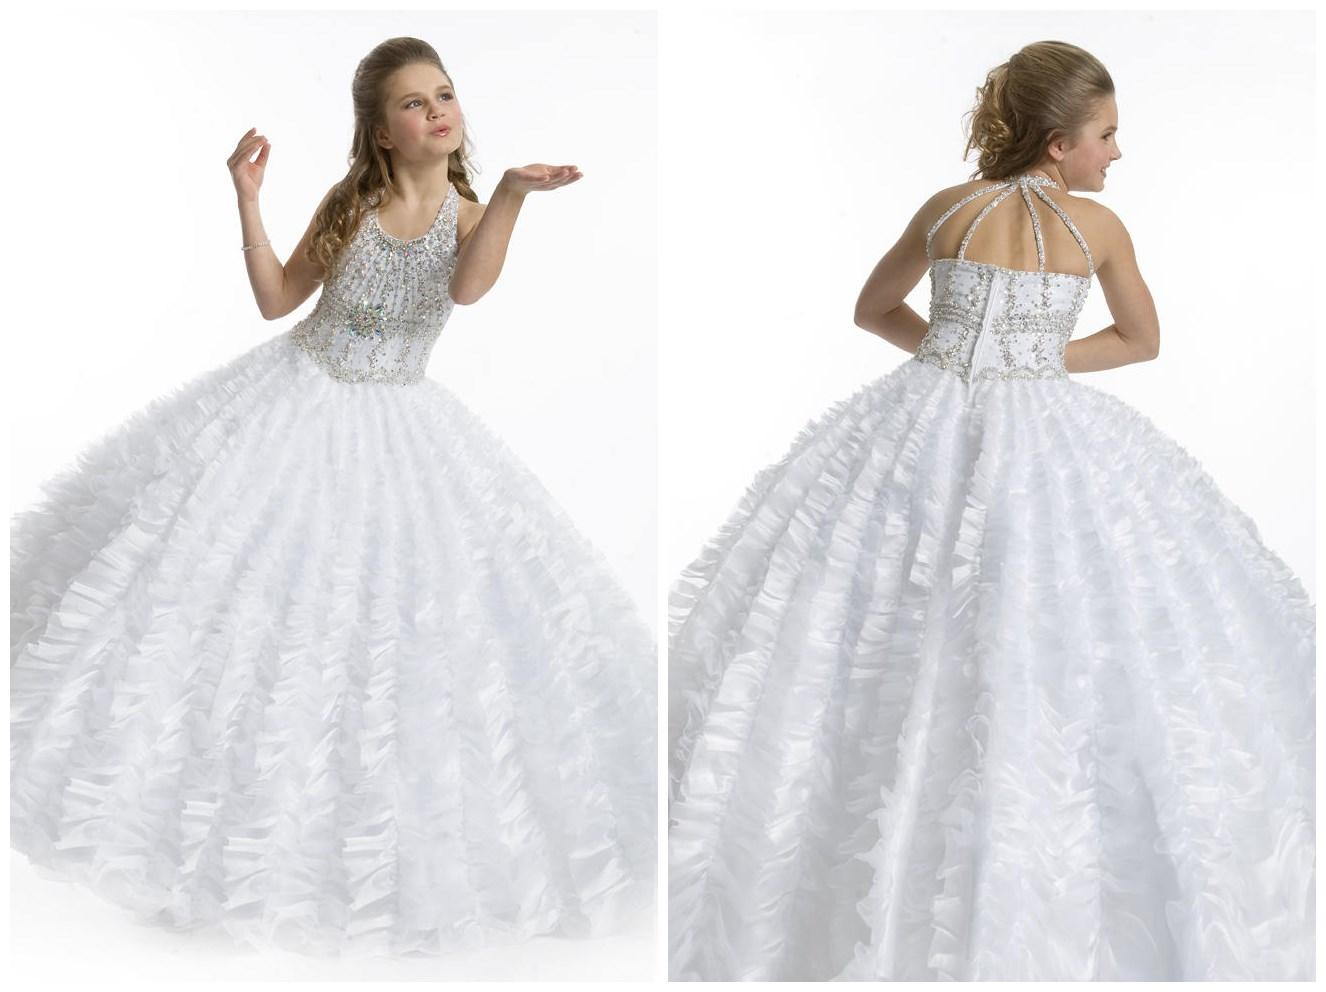 Huge Wedding Ball Gowns: Big Ball Gown Tull White Halter Beads First Communion